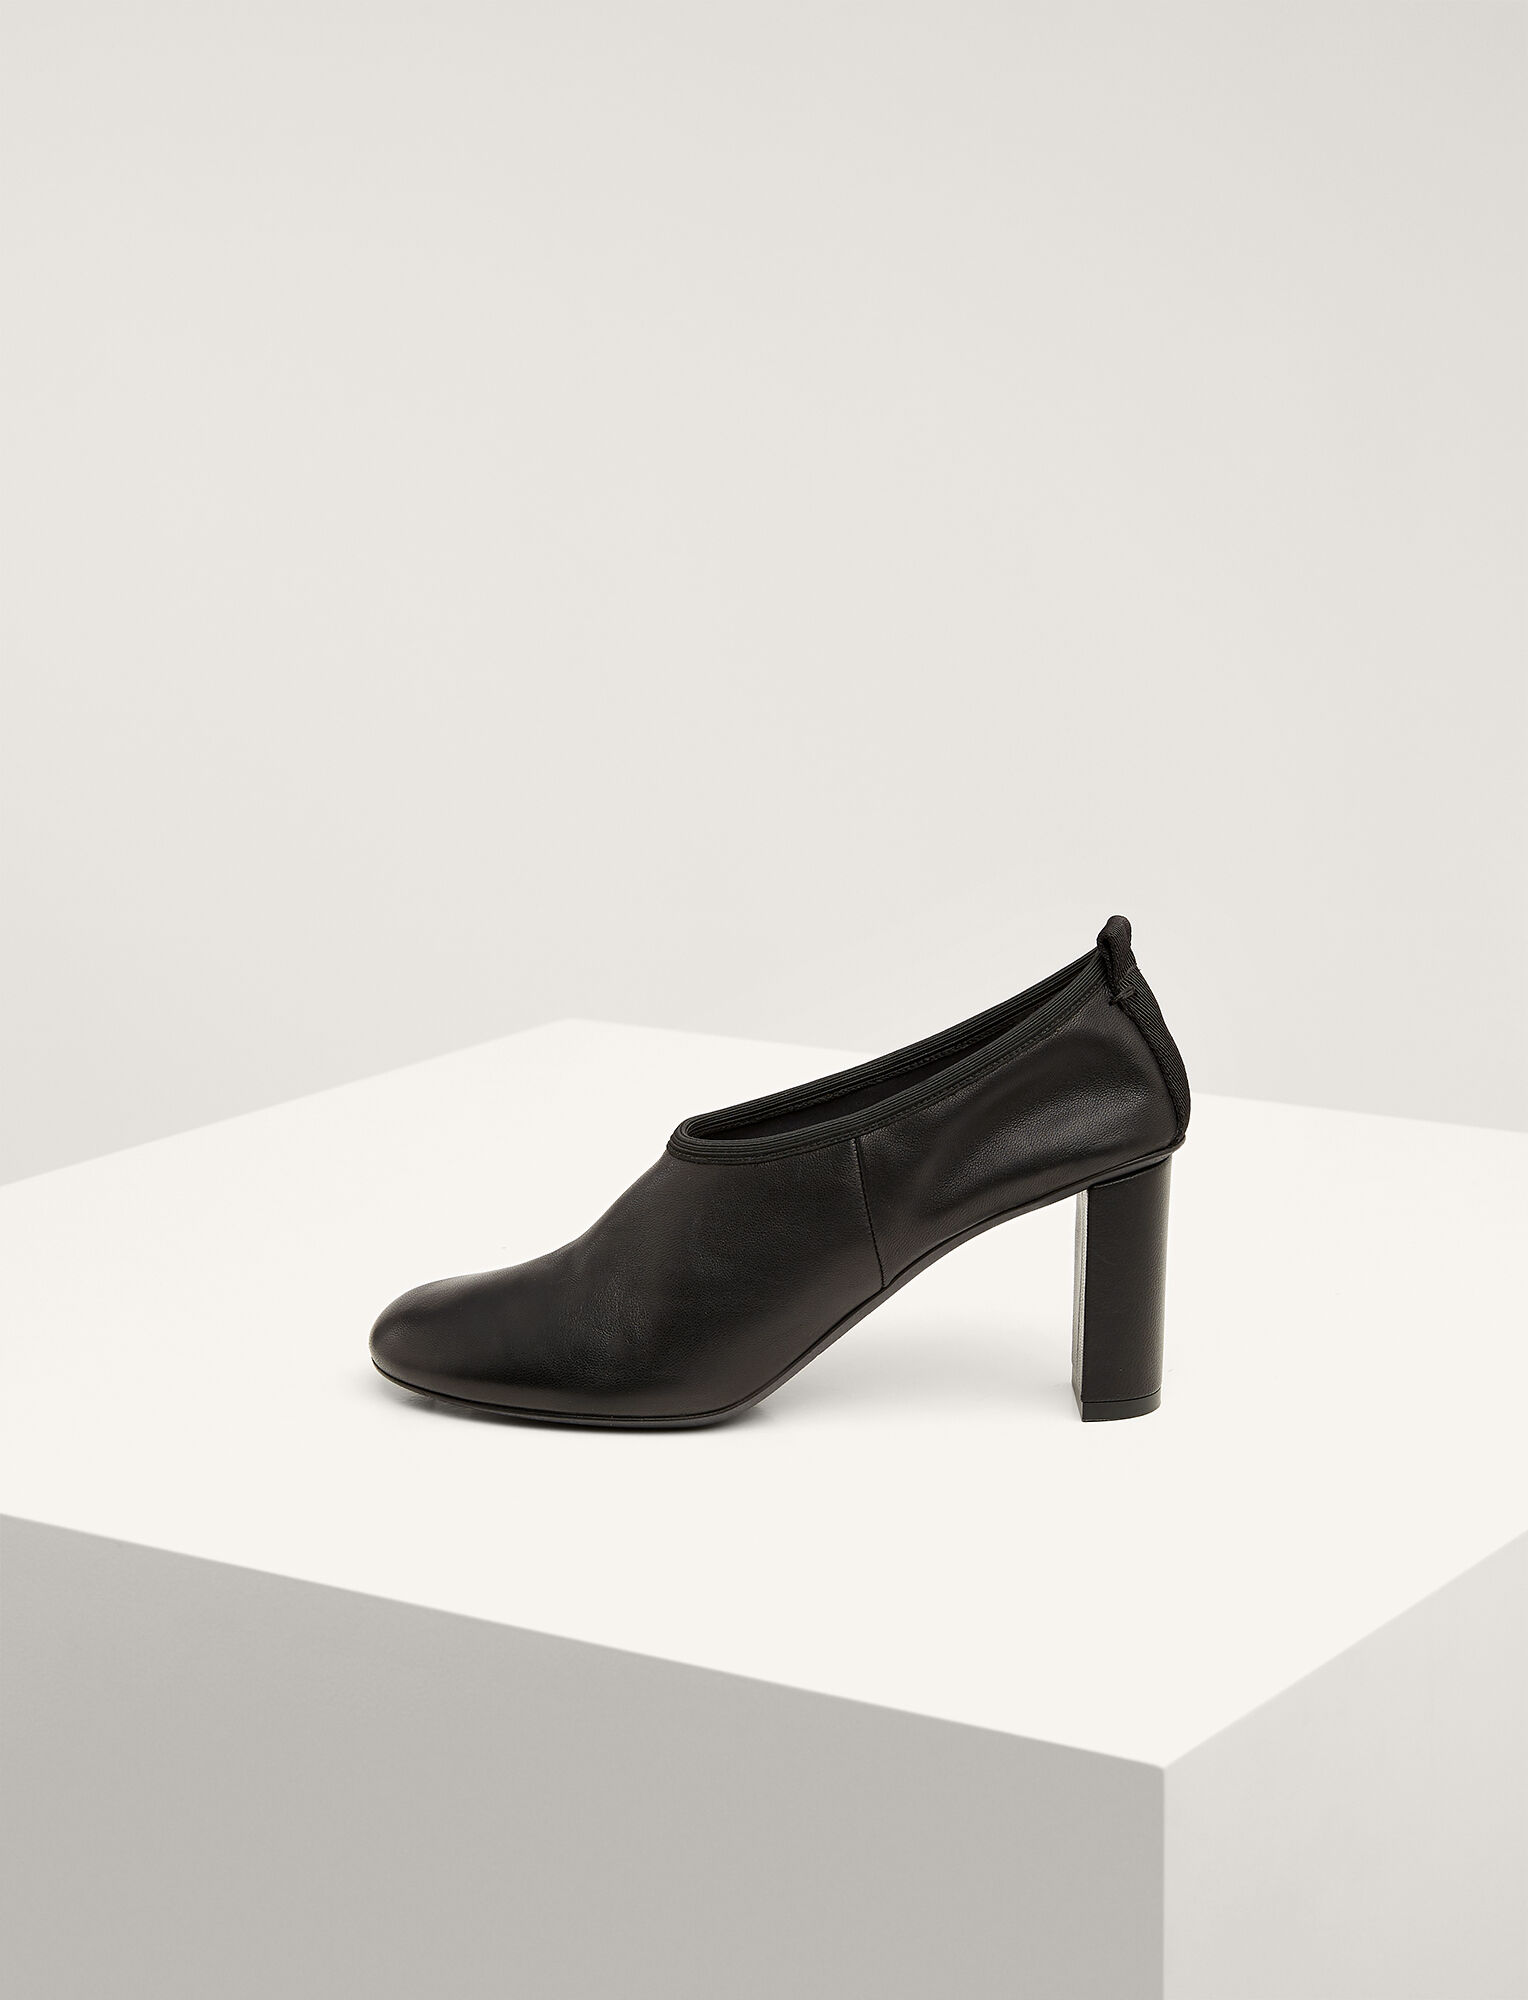 Joseph, Ty Block Heel Pump, in BLACK